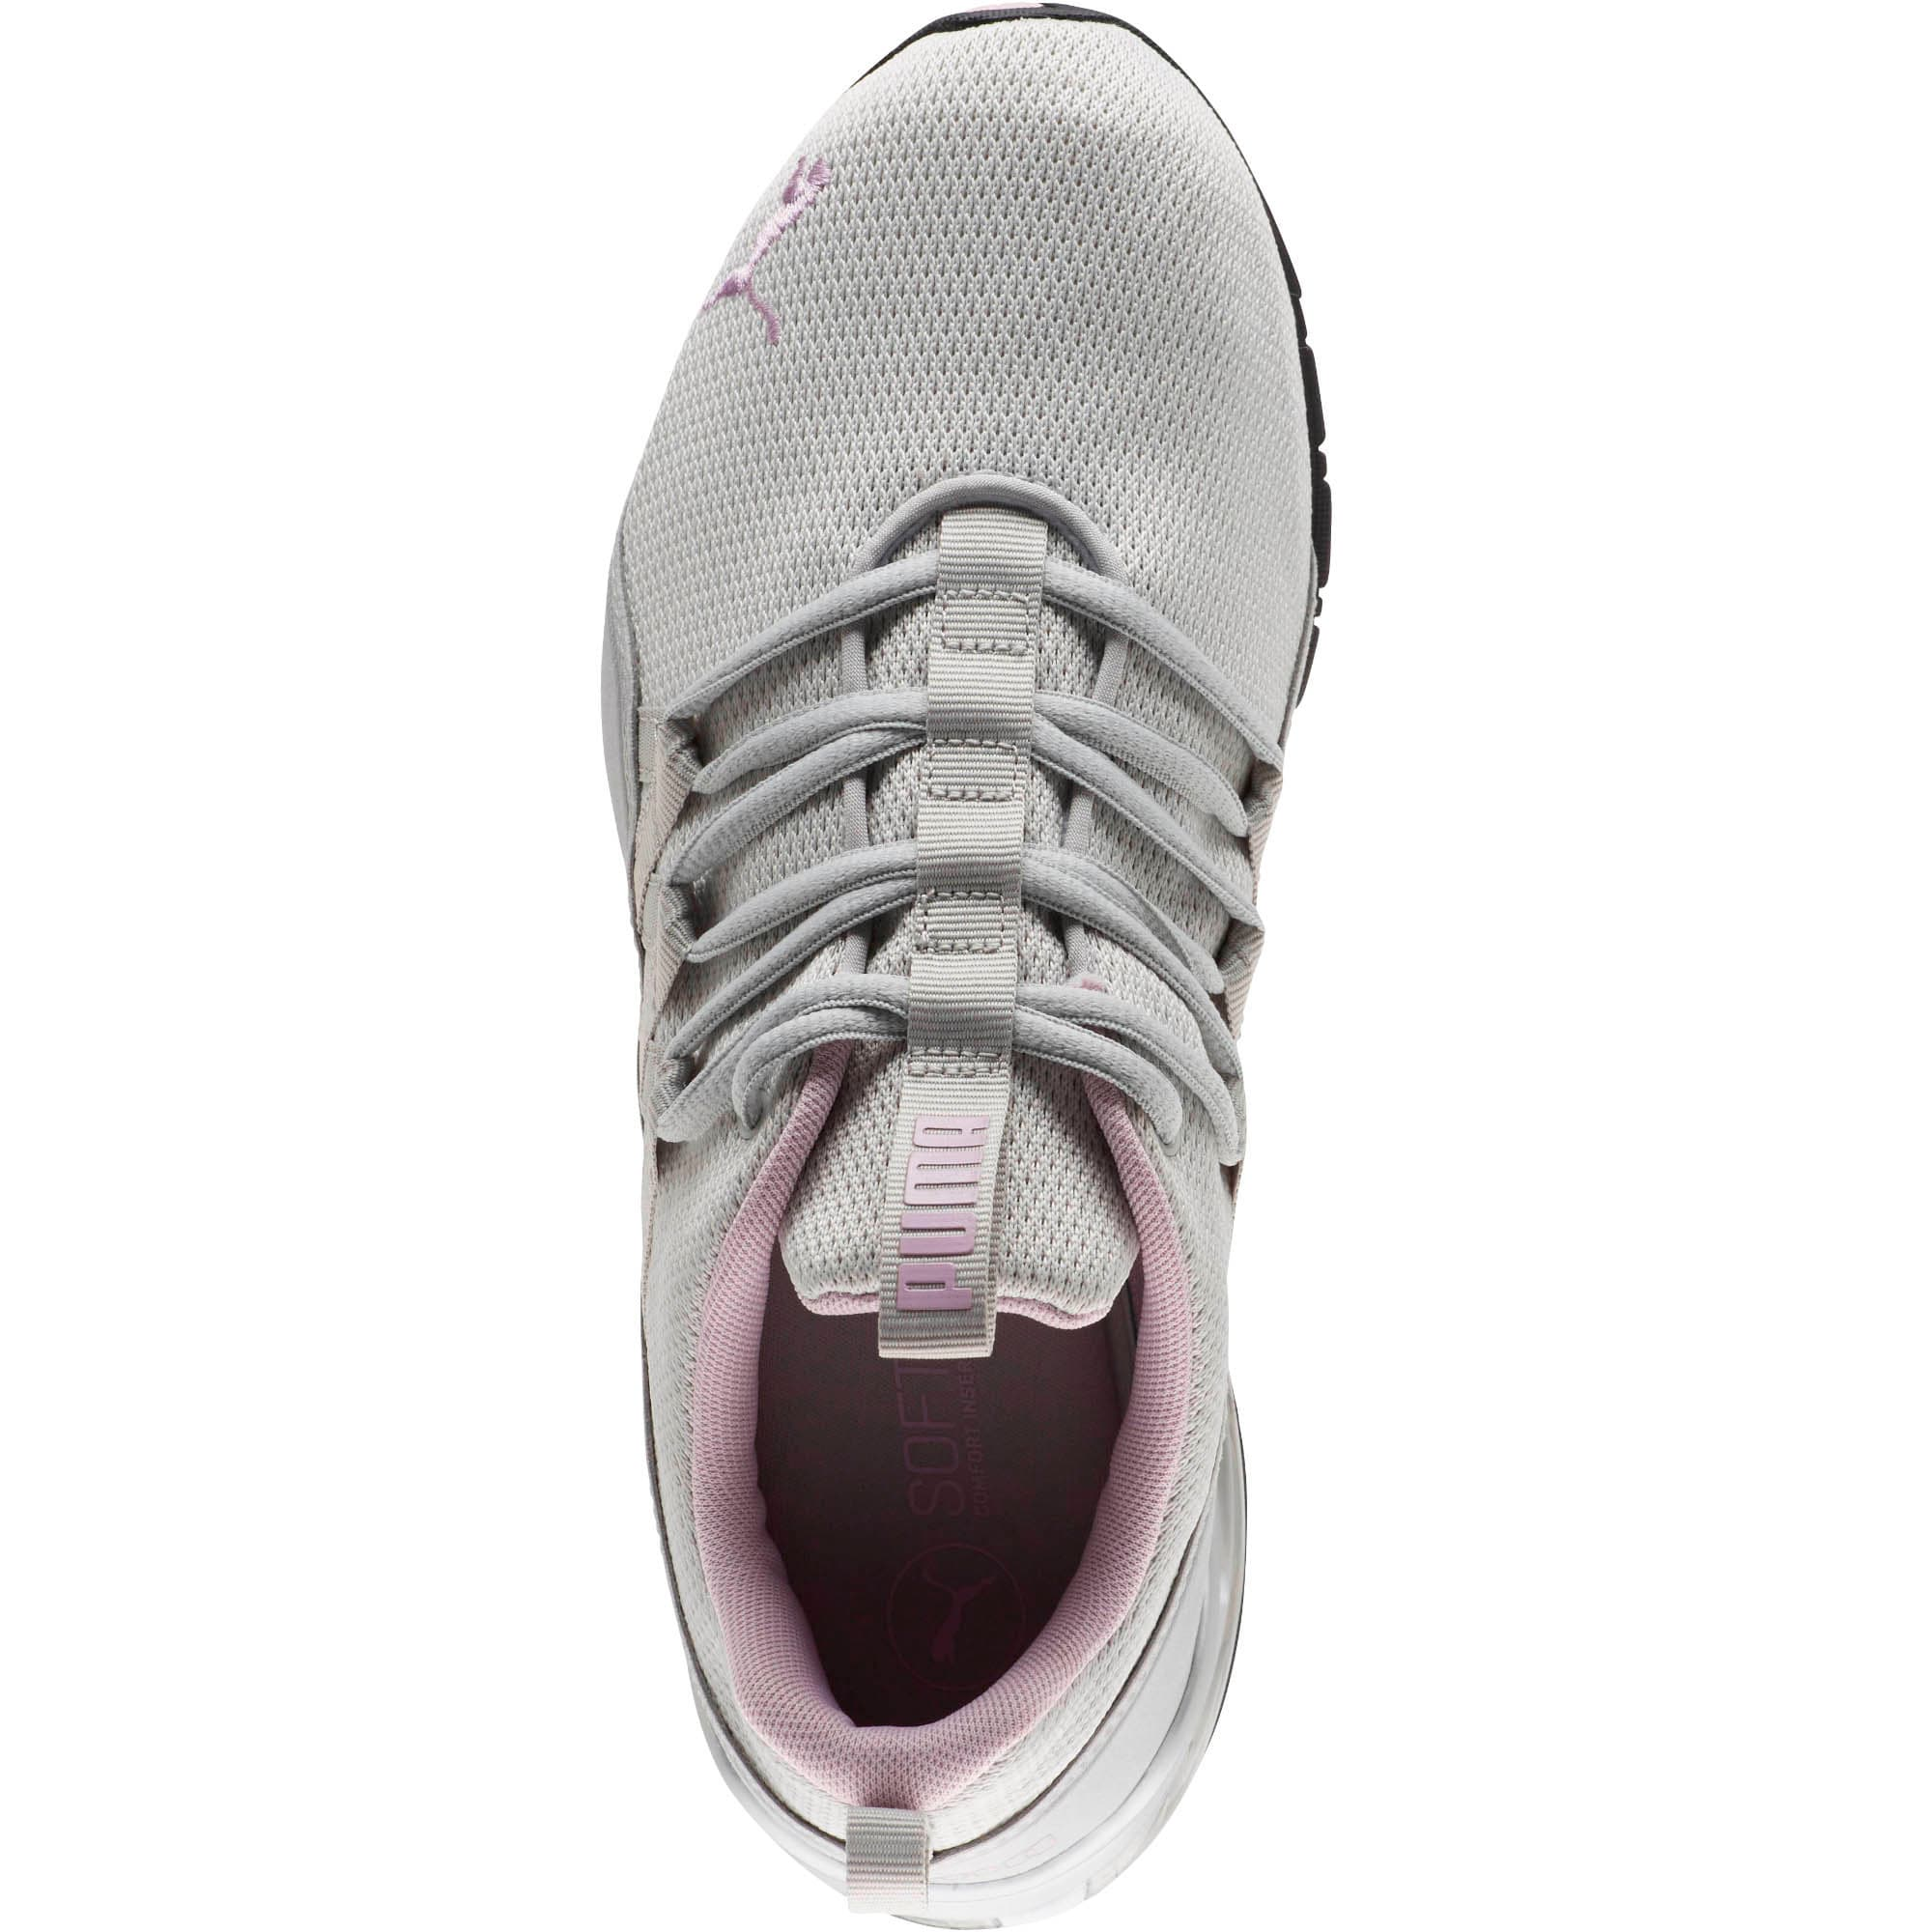 Thumbnail 5 of Riaze Prowl Women's Training Shoes, Gray Violet-Winsome Orchid, medium